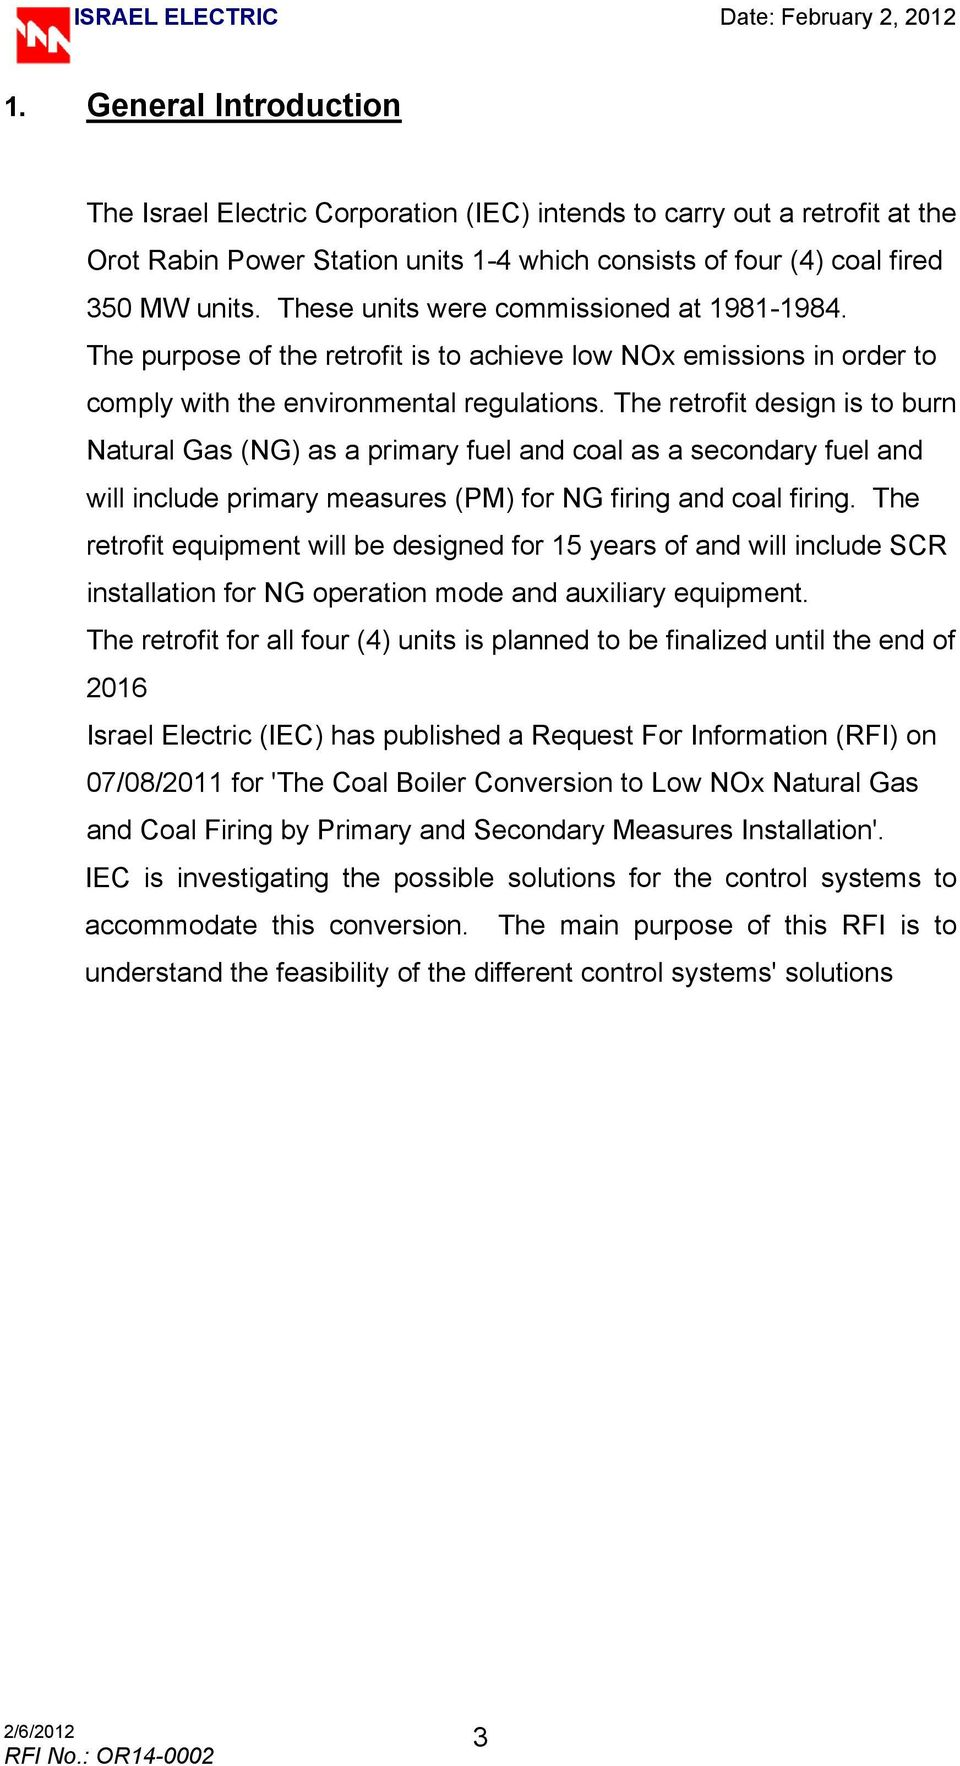 The retrofit design is to burn Natural Gas (NG) as a primary fuel and coal as a secondary fuel and will include primary measures (PM) for NG firing and coal firing.